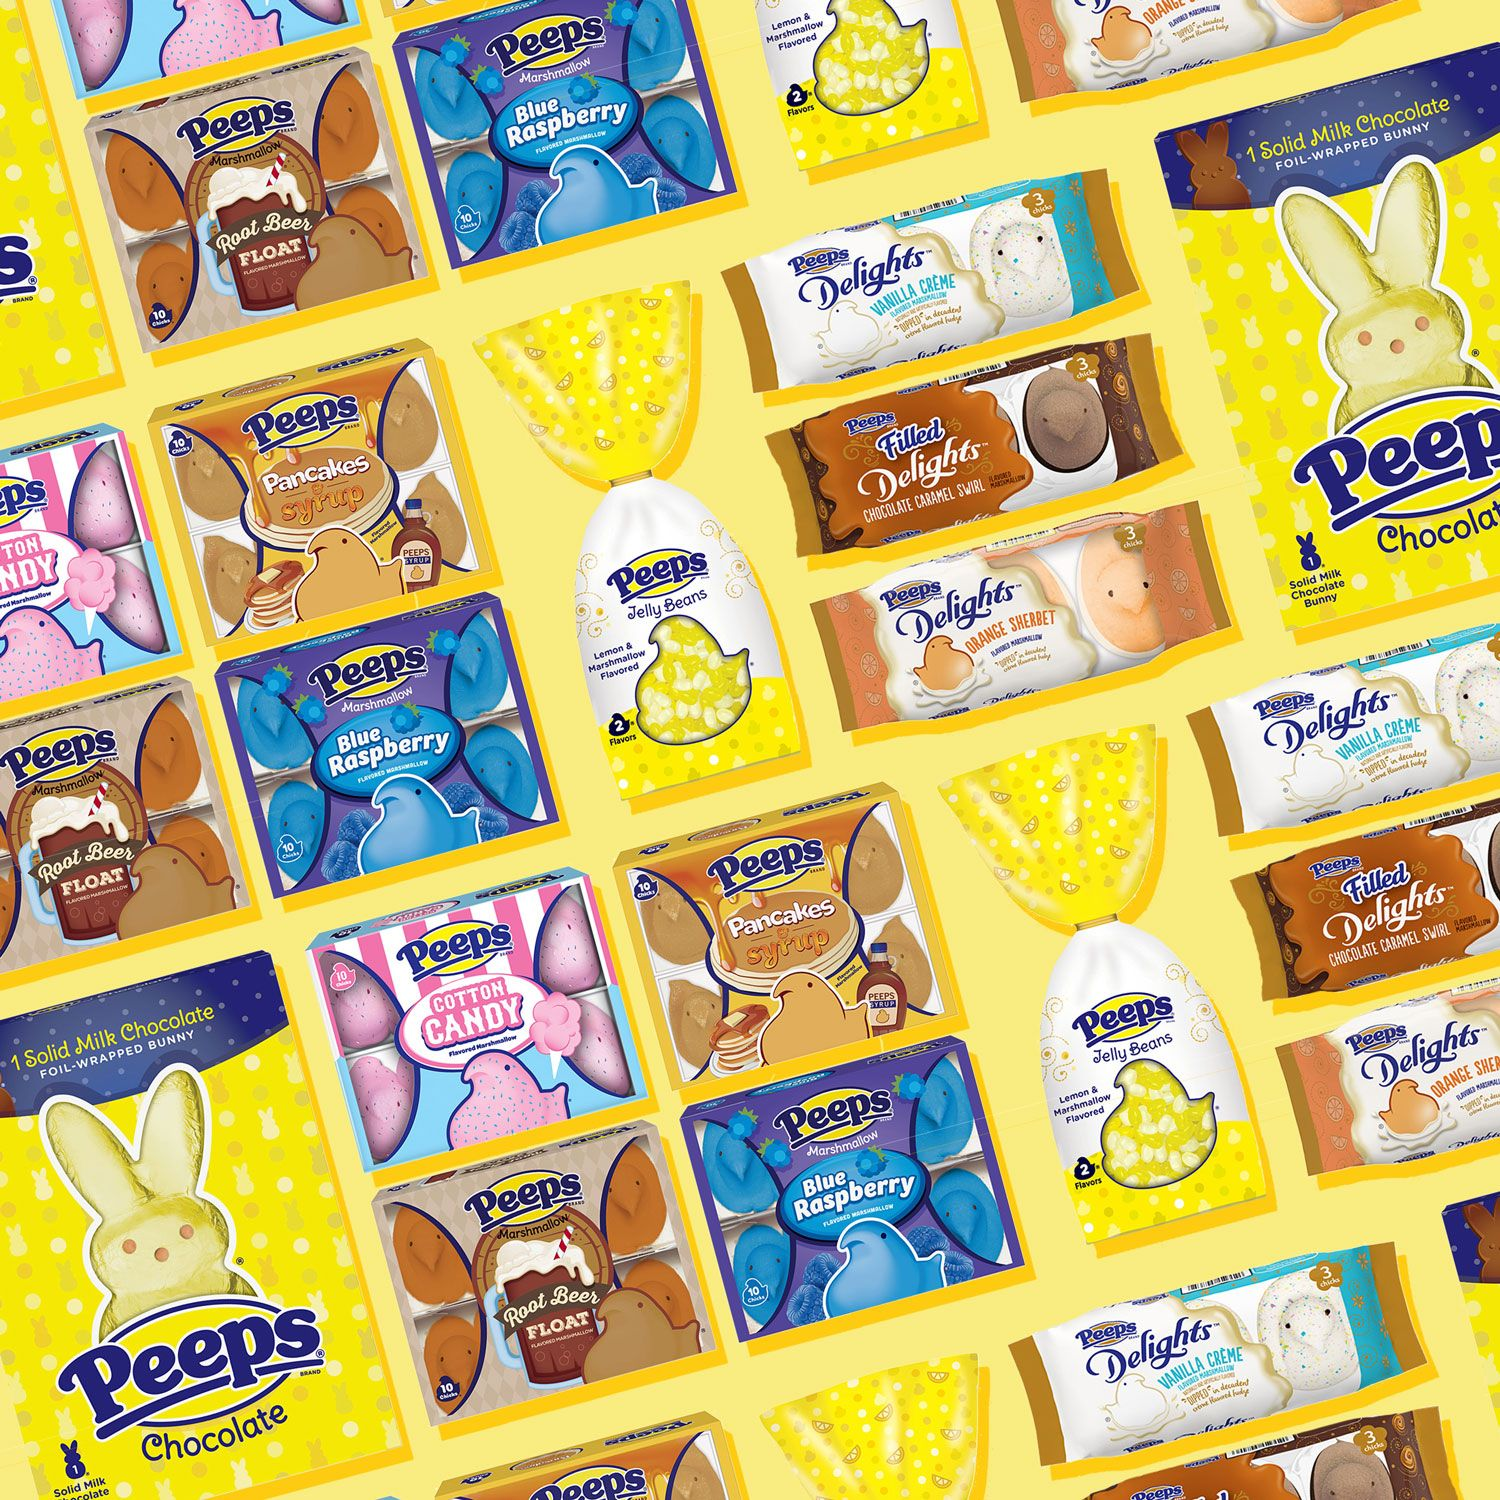 Peeps Full Easter Line Is Here and You're Gonna Want to Try Everything